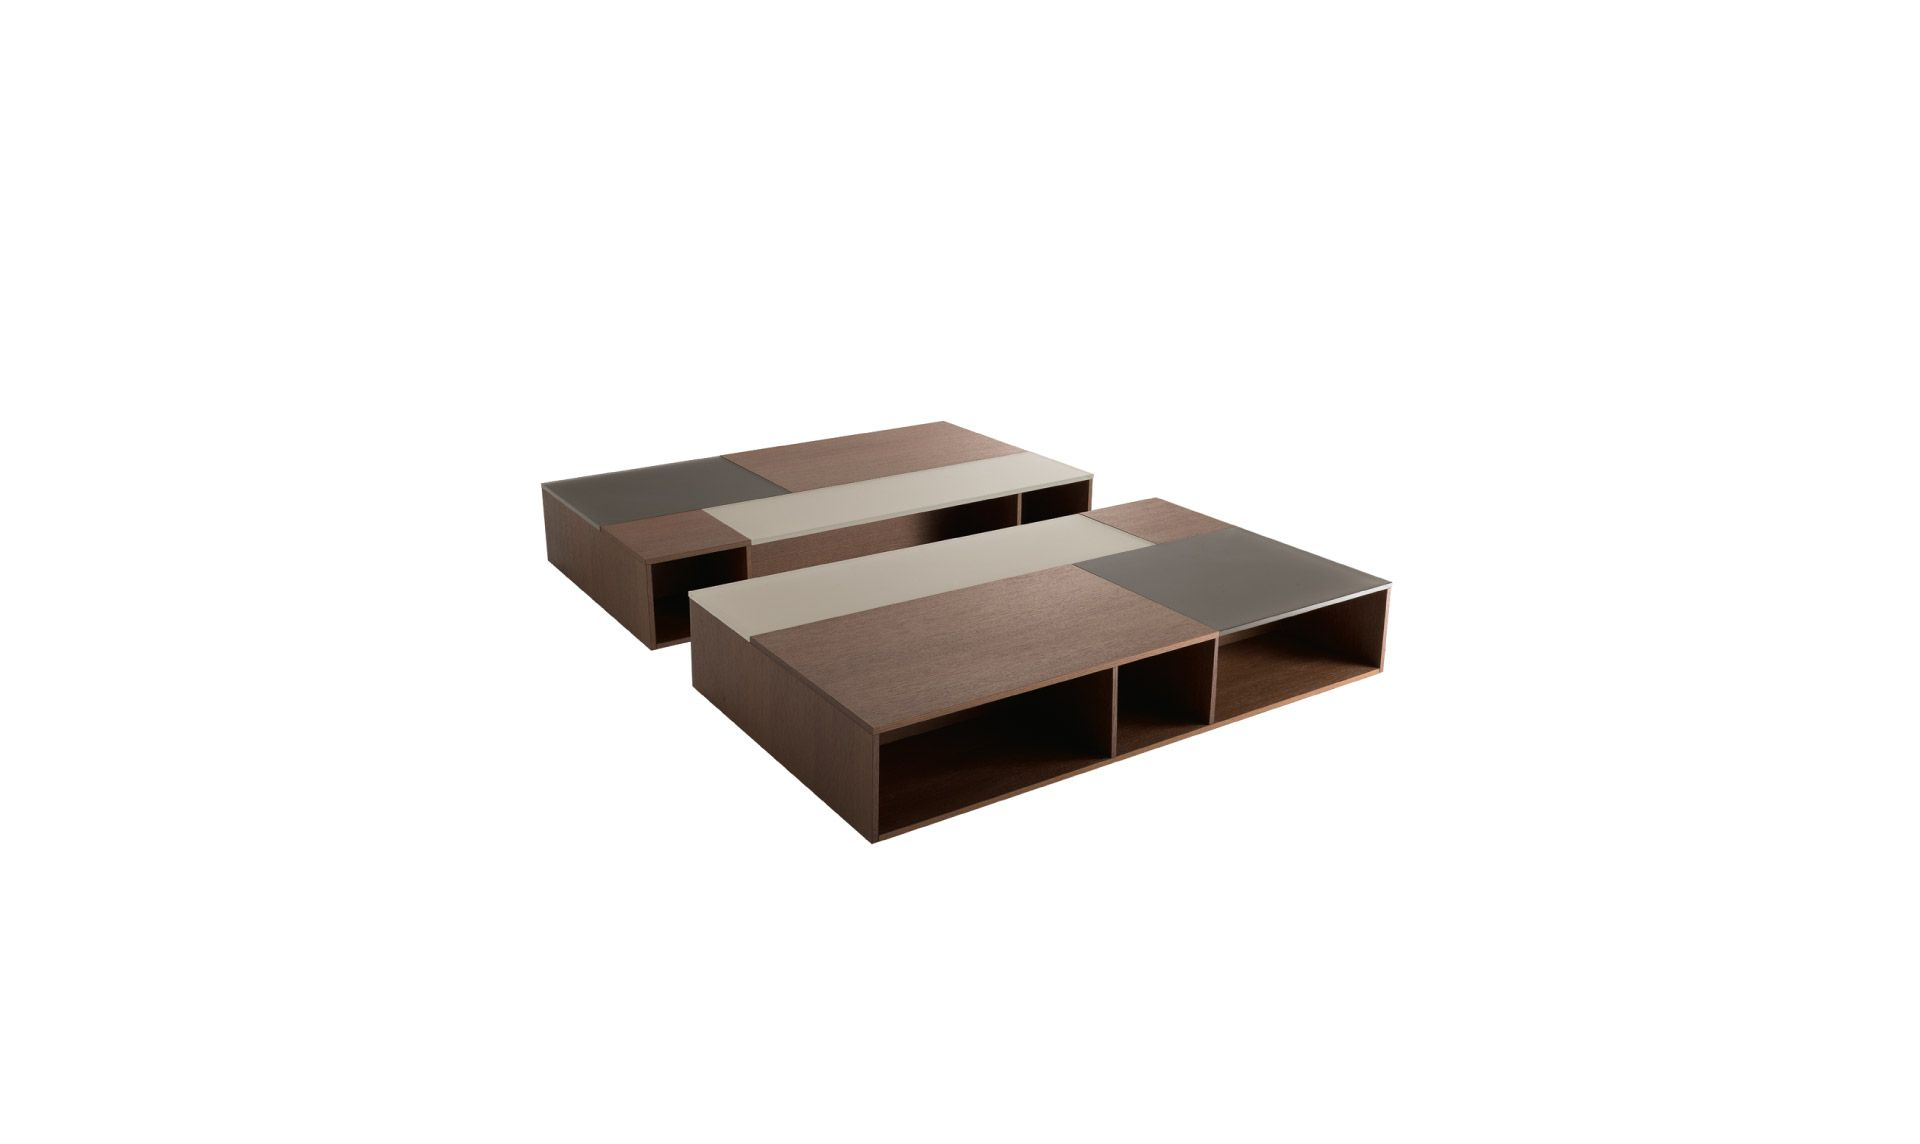 Jesse Prive Rectangular Coffee Table With Open Compartments Top With Frosted Lacquered Glass Inserts Anthra Rectangular Coffee Table Coffee Table Side Table [ 1144 x 1920 Pixel ]